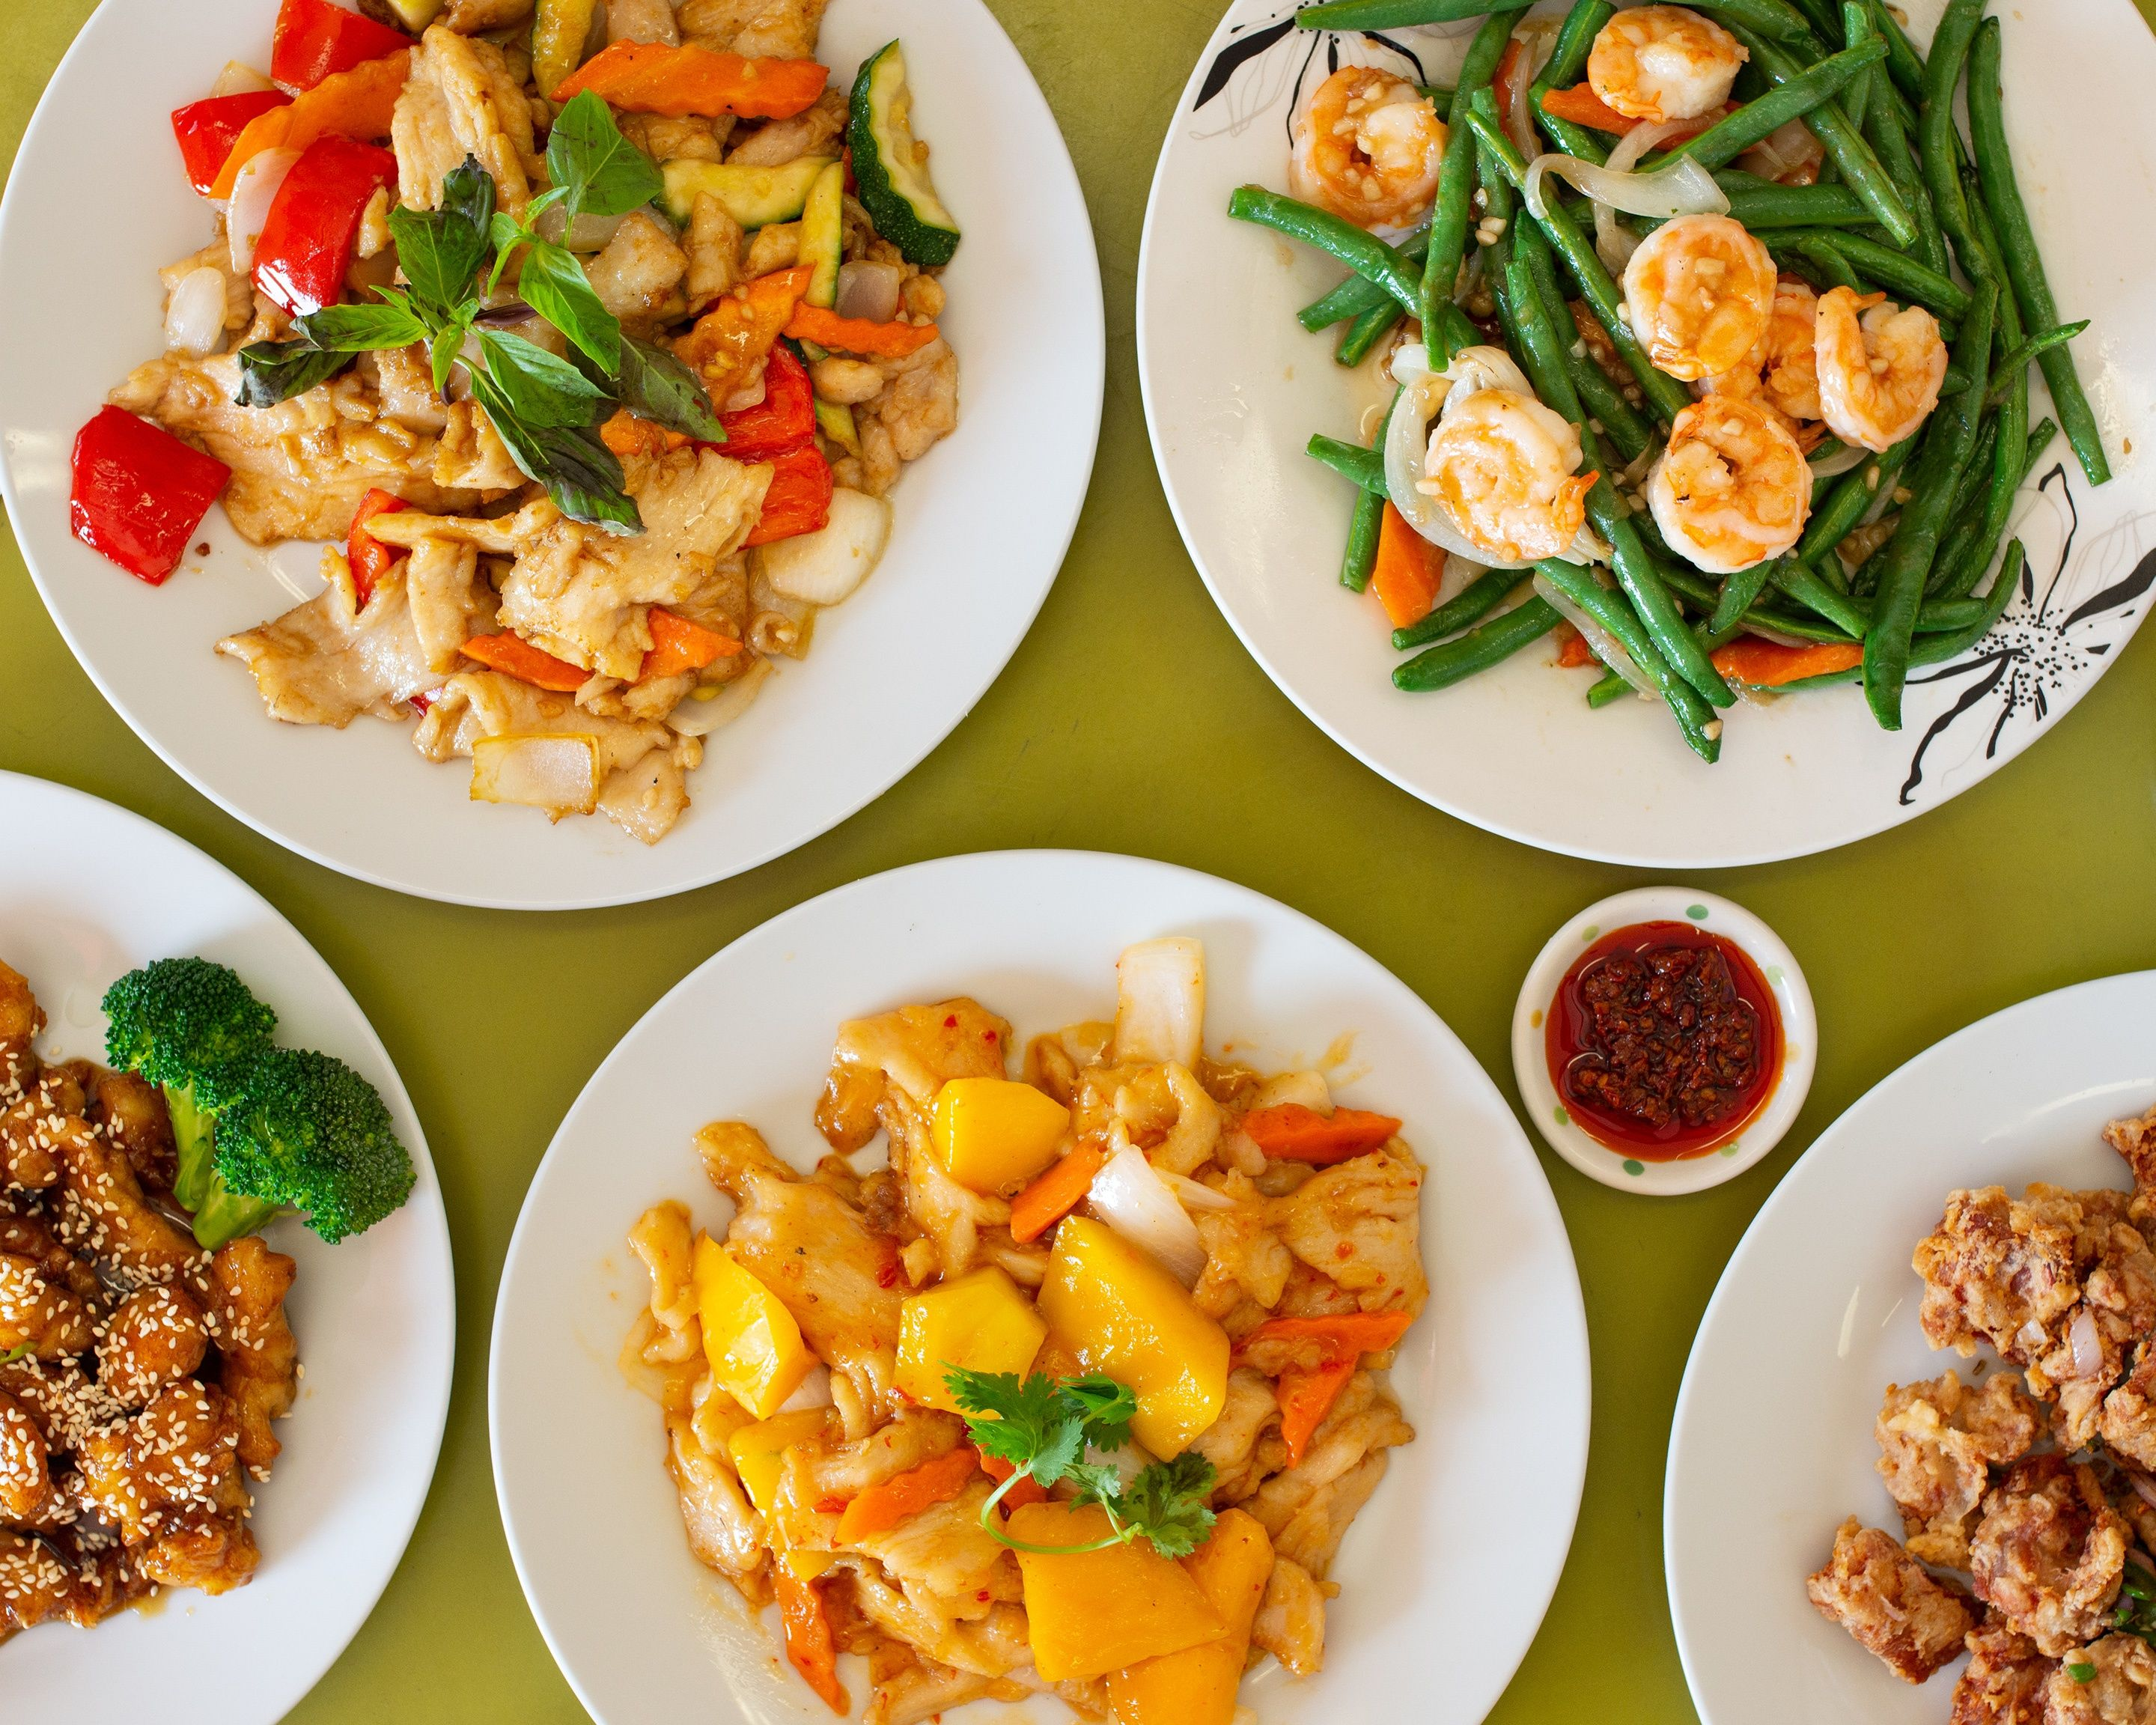 Order Kim S Chinese Kitchen Delivery Online Phoenix Menu Prices Uber Eats